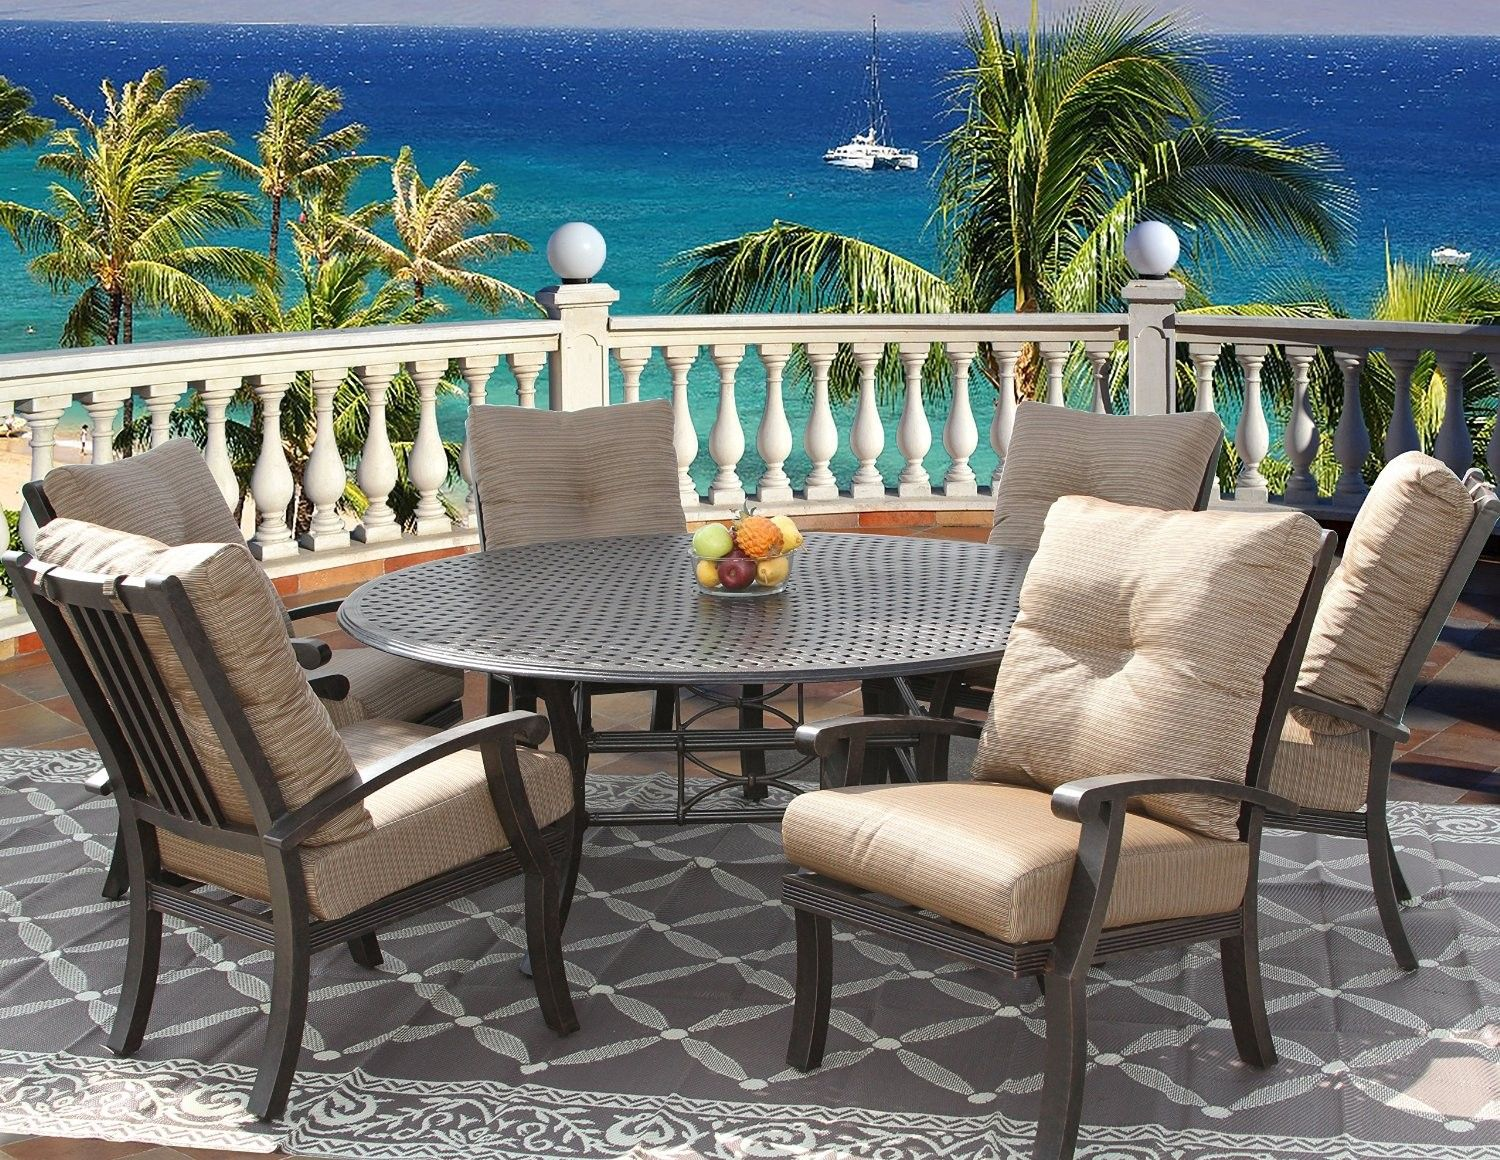 Amazing Outdoor Round Dining Sets | Cushion Outdoor Patio 7pc Dining Set For 6  Personu2026